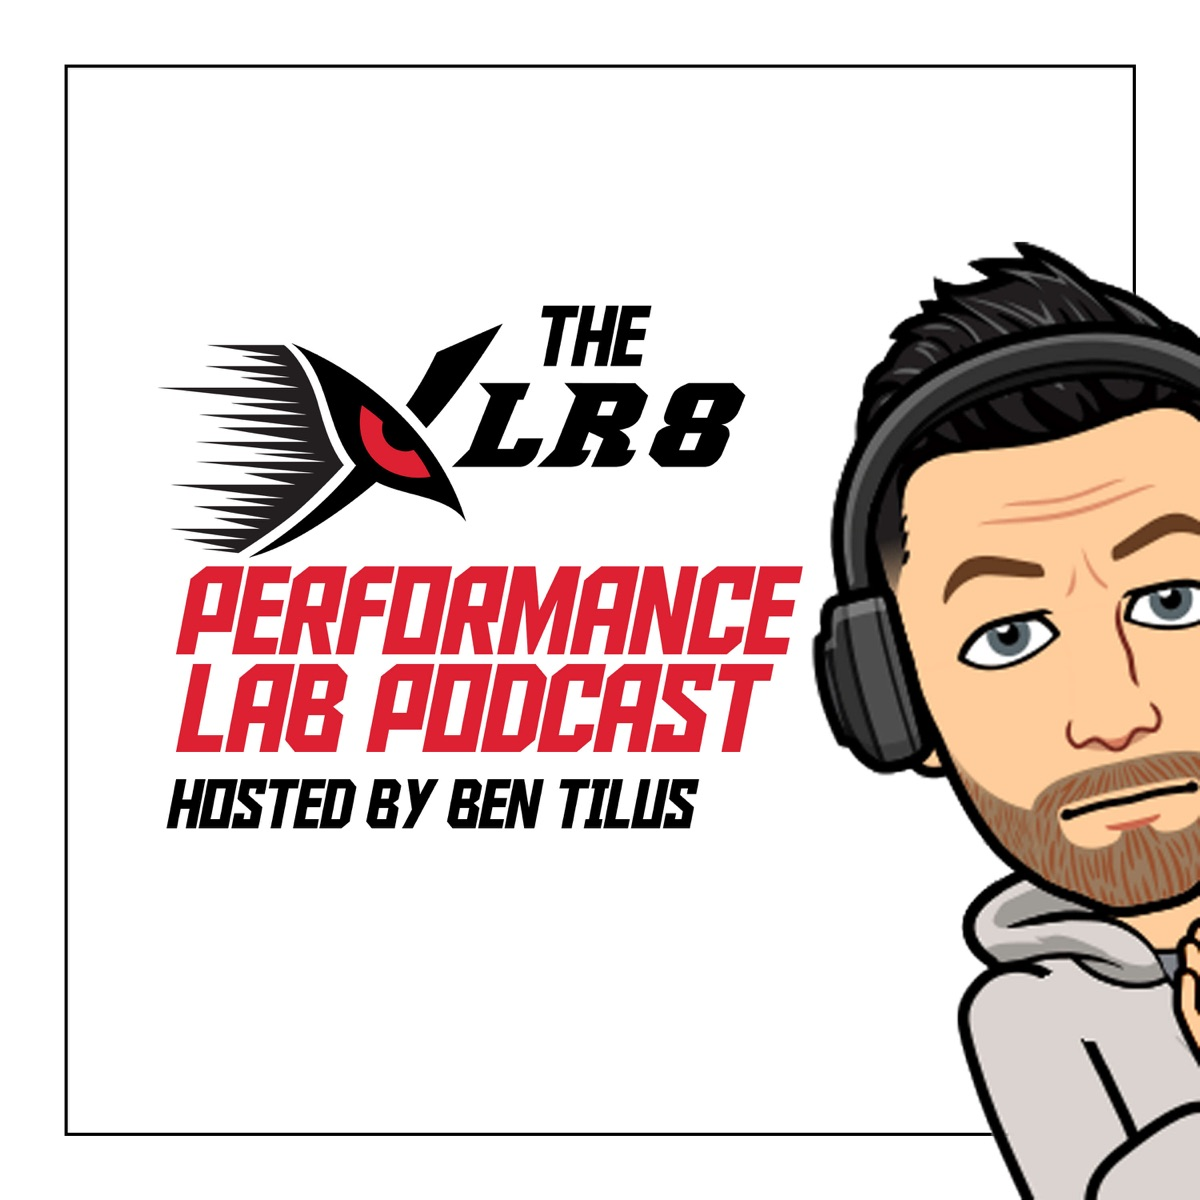 The XLR8 Performance Lab Podcast